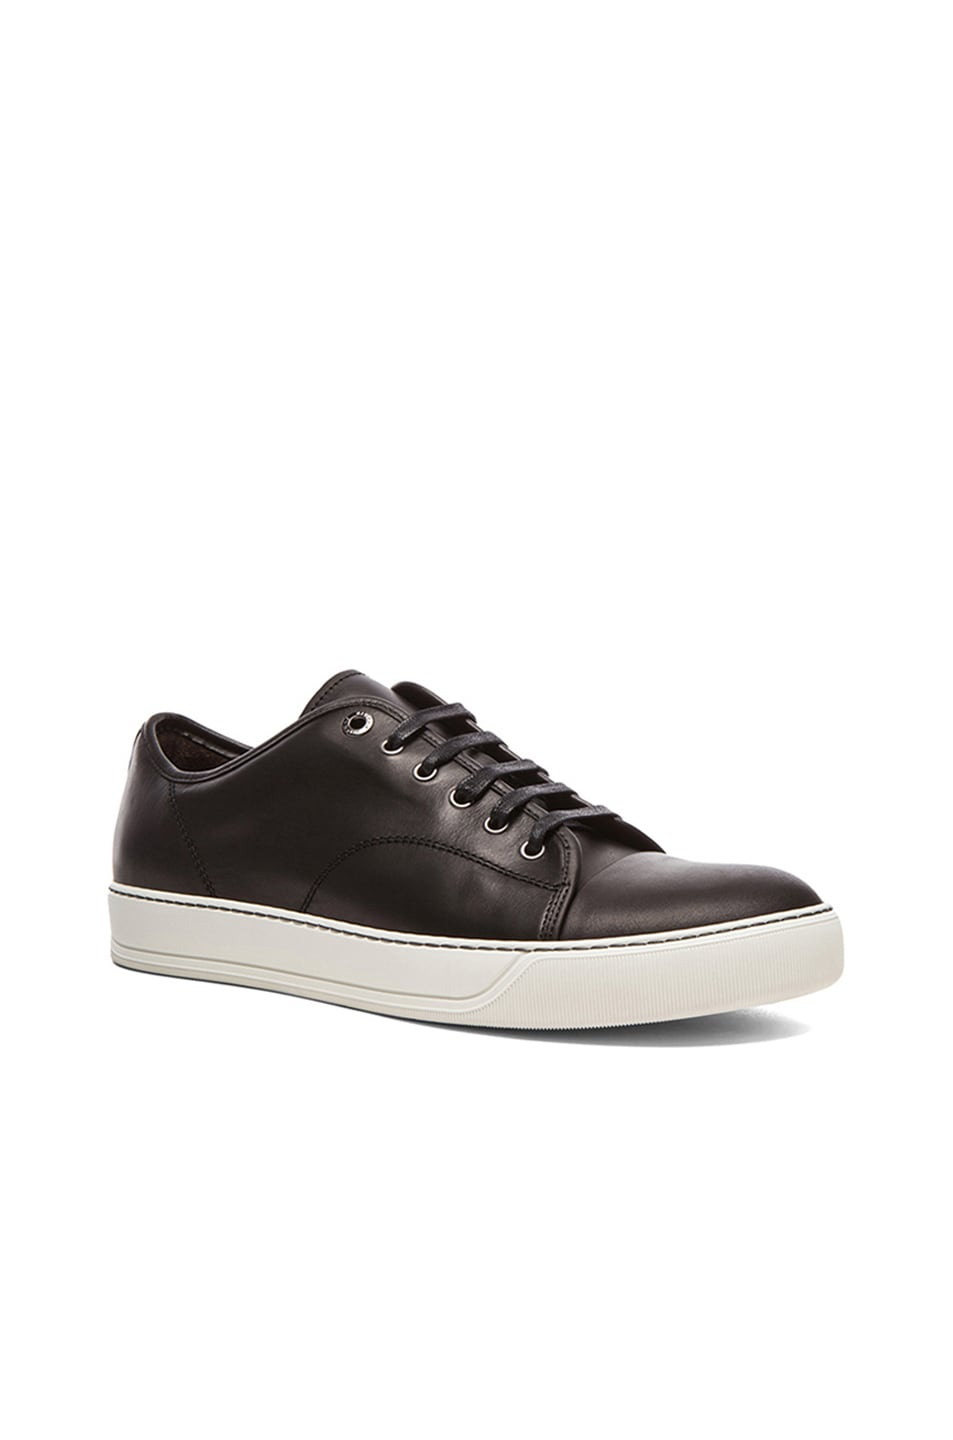 Image 1 of Lanvin Polished Calfskin Low Top Sneakers in Black